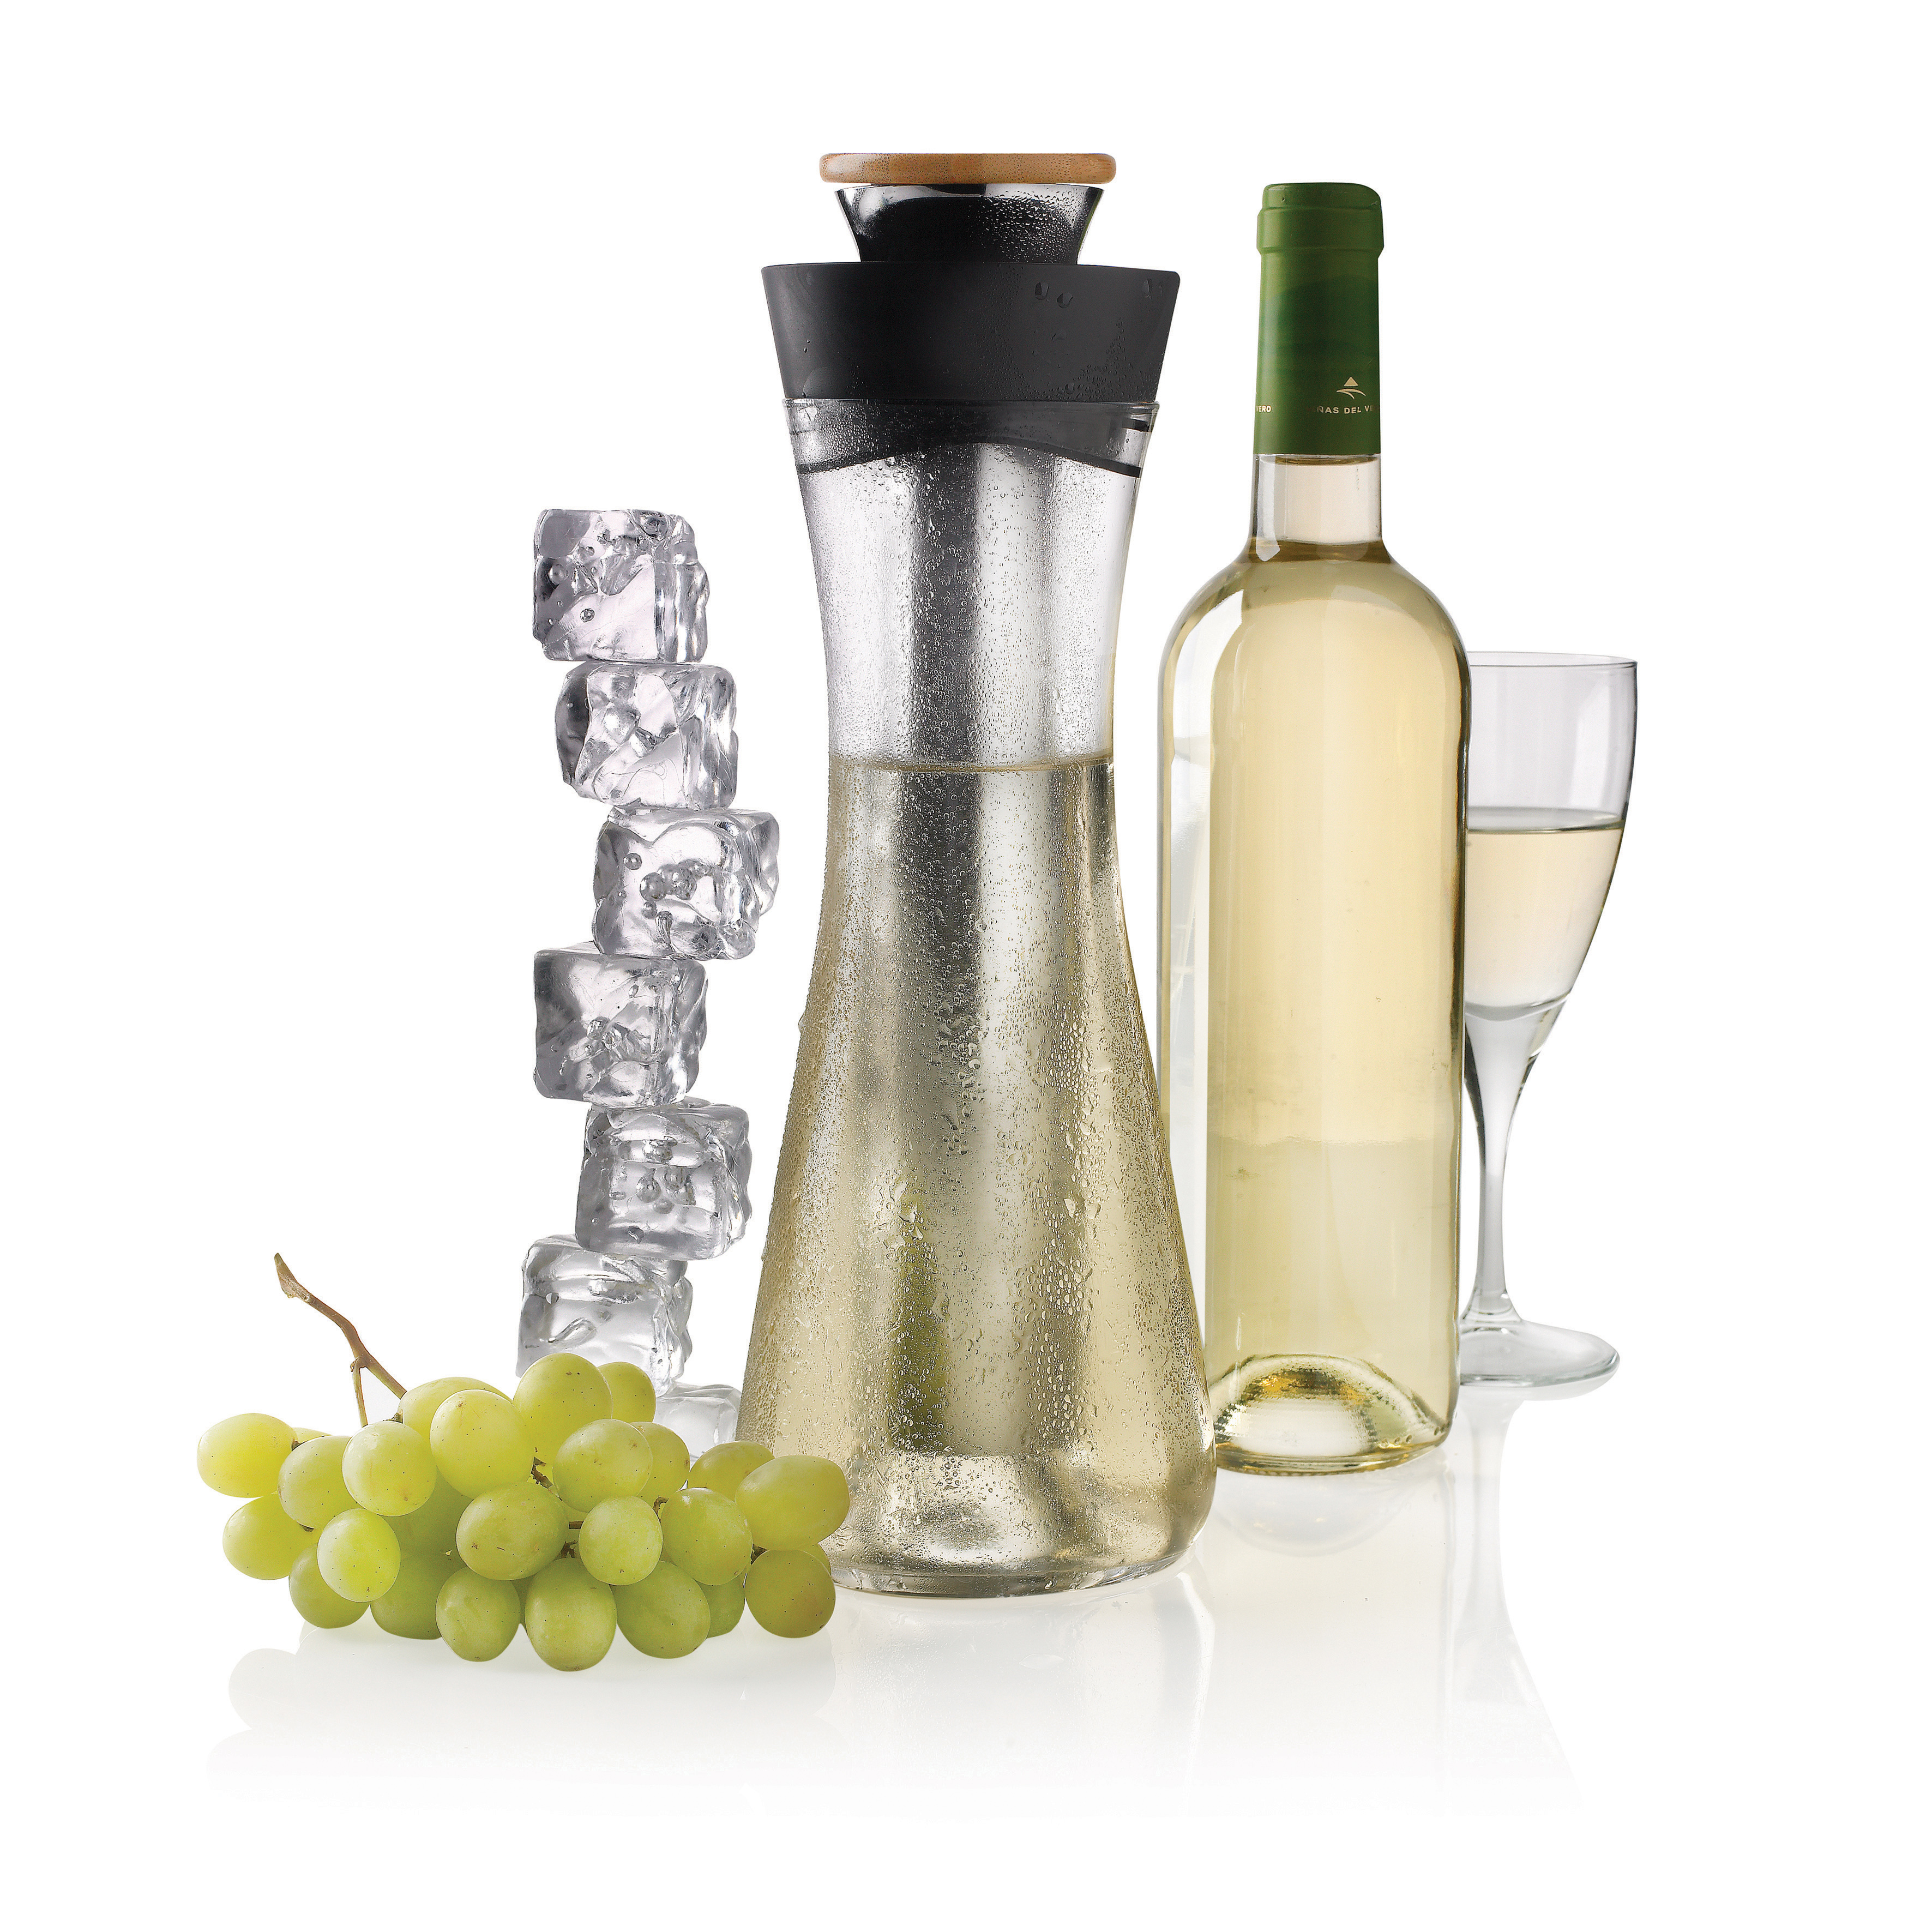 Gliss white wine carafe